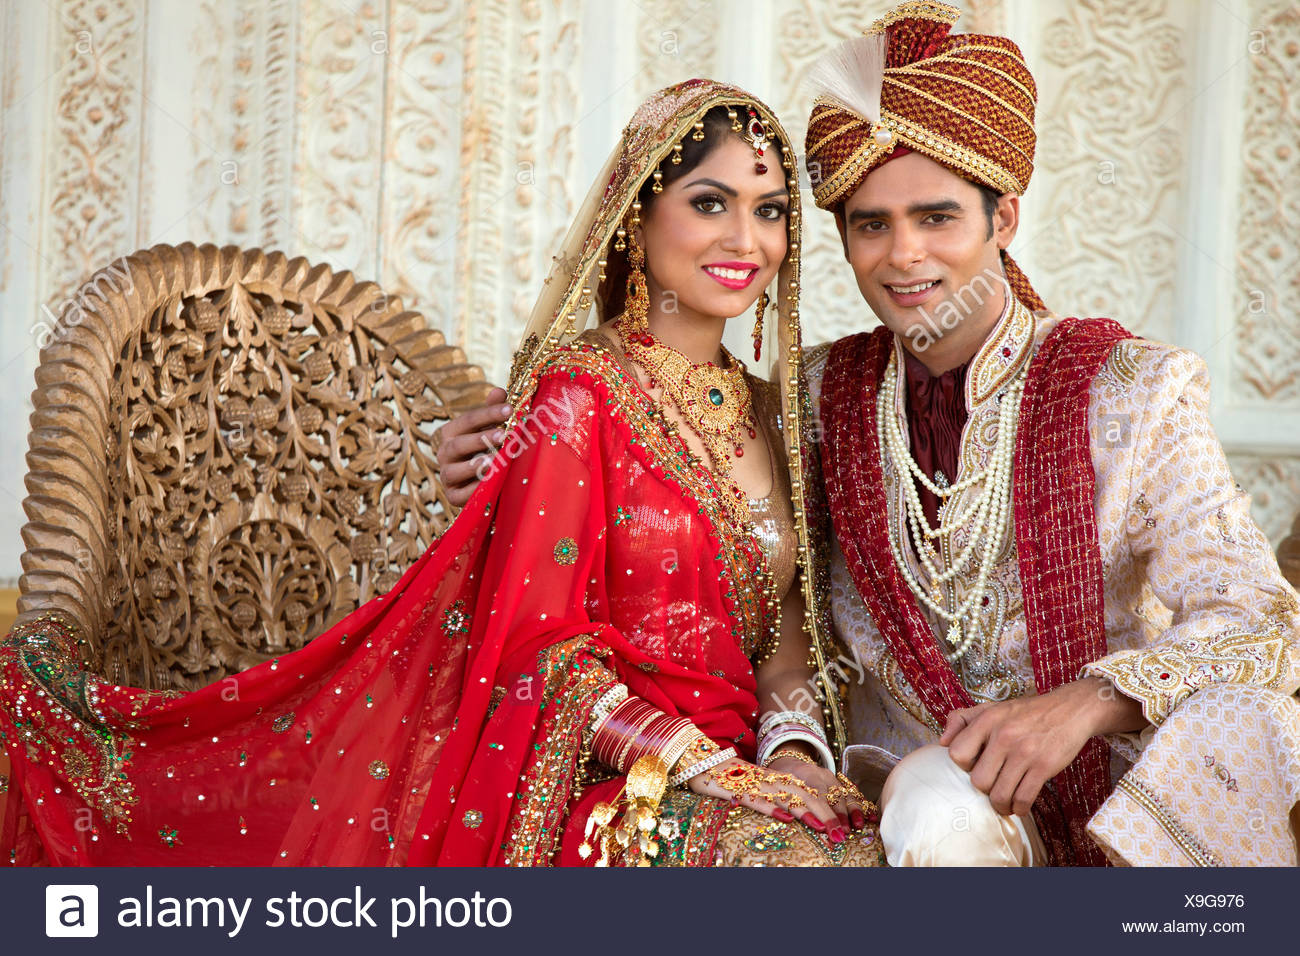 Indian Bride And Groom In Traditional Wedding Dress Sitting On A Couch Stock Photo Alamy